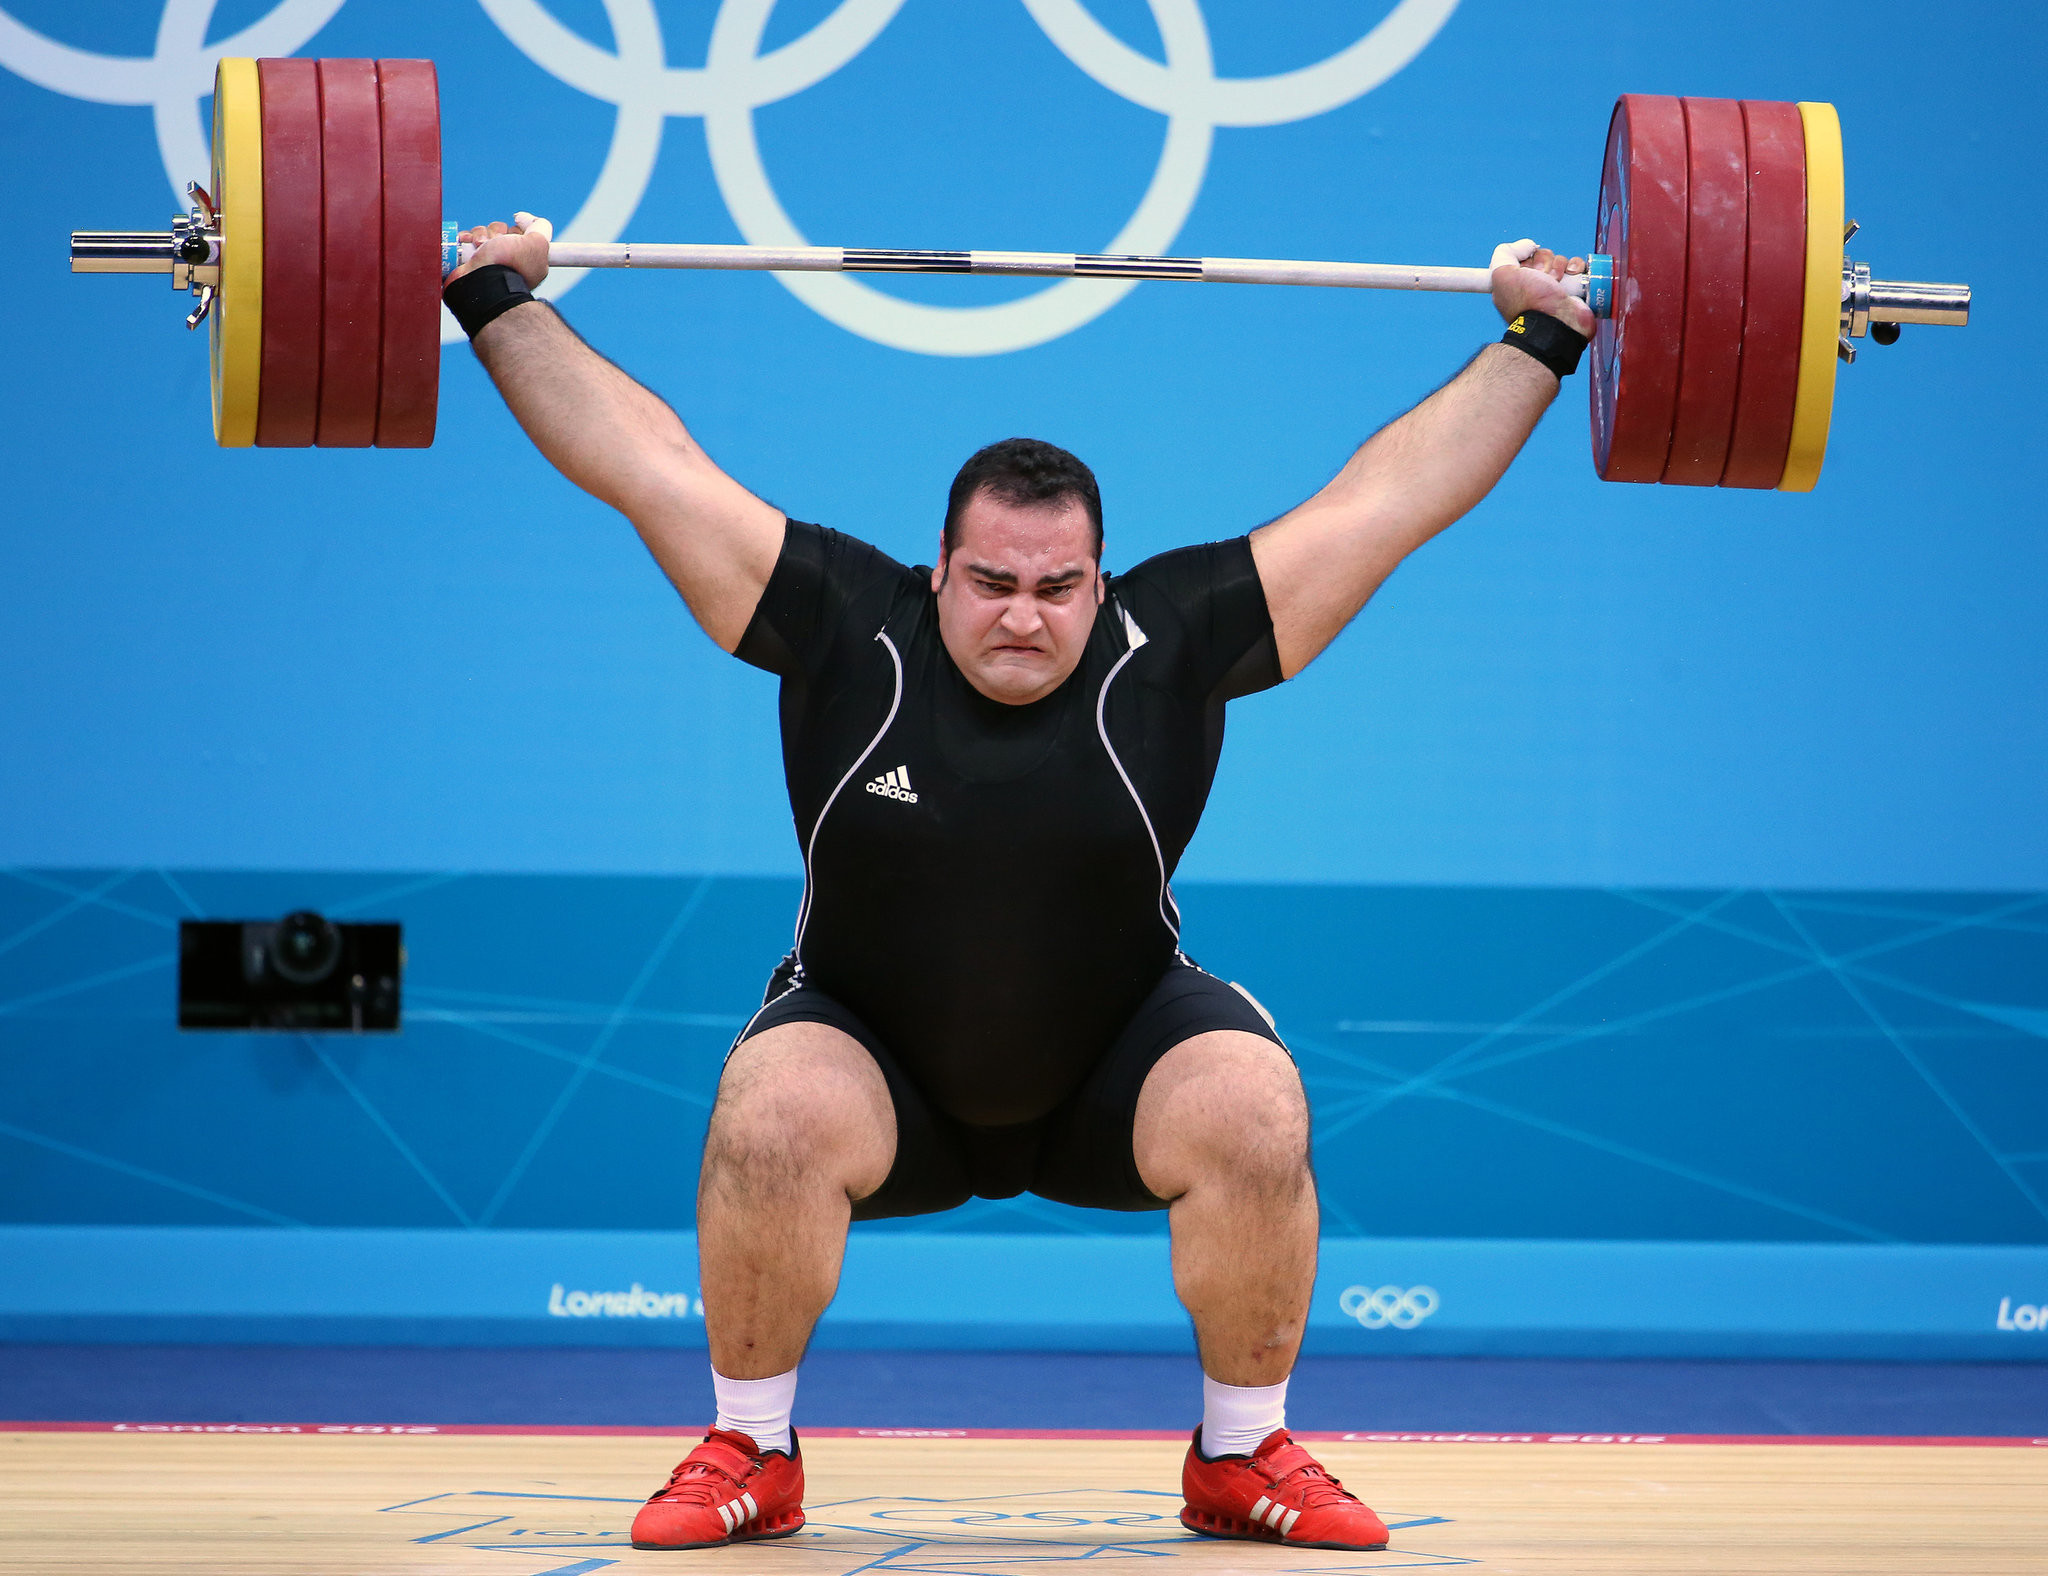 Res: 2048x1576, High Resolution Wallpaper | Weightlifting  px